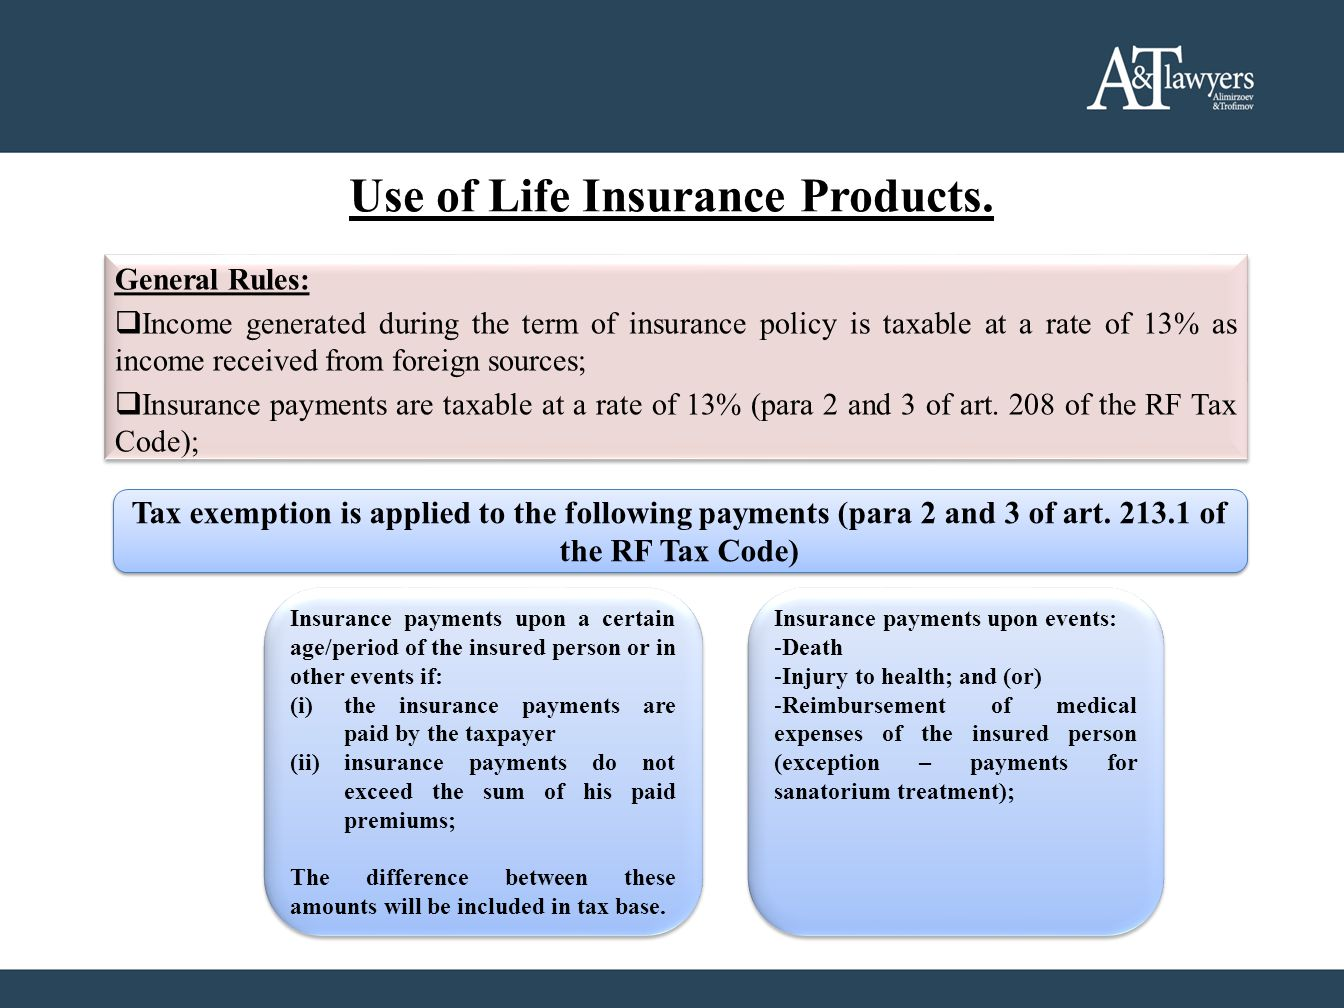 Use of Life Insurance Products. General Rules: Income generated during the term of insurance policy is taxable at a rate of 13% as income received fro